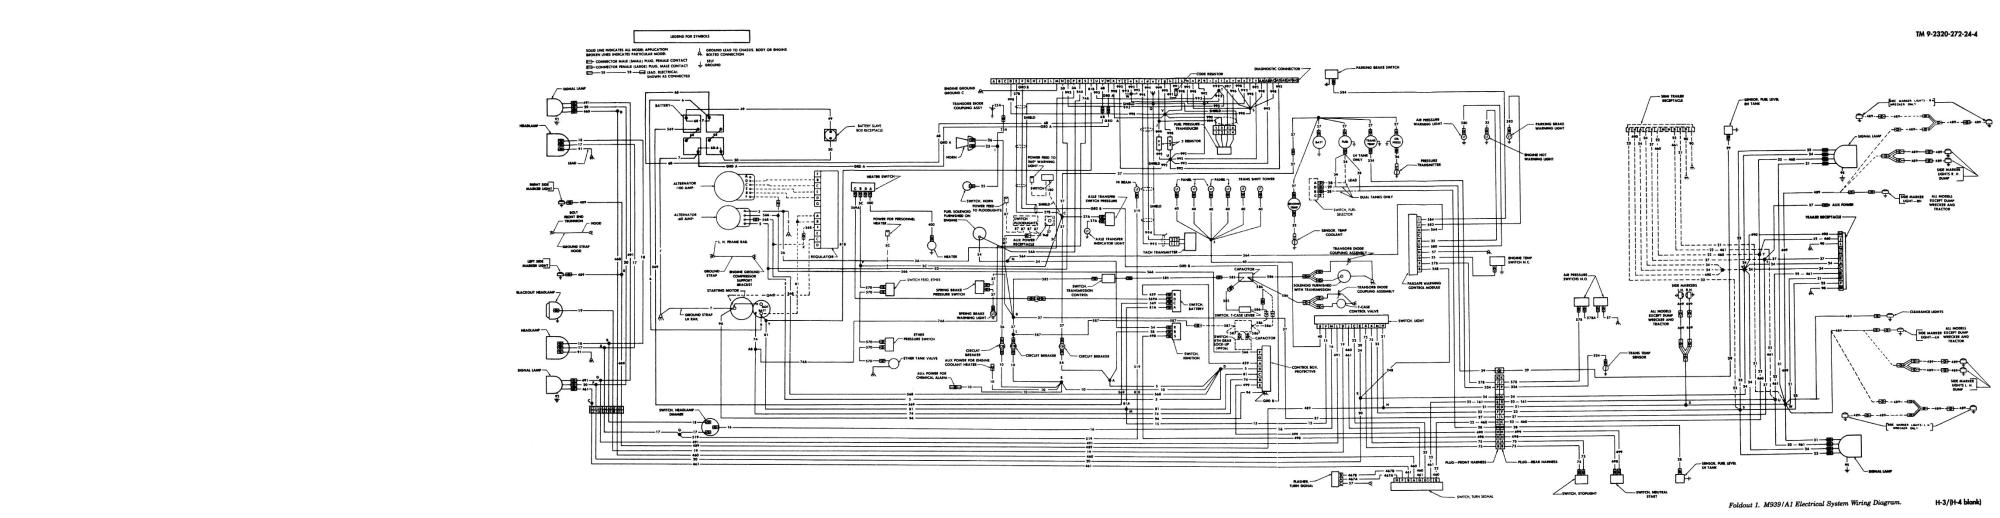 hight resolution of foldout 1 m939 a1 electrical system wiring diagram m939 wiring diagram m939 a1 electrical system wiring